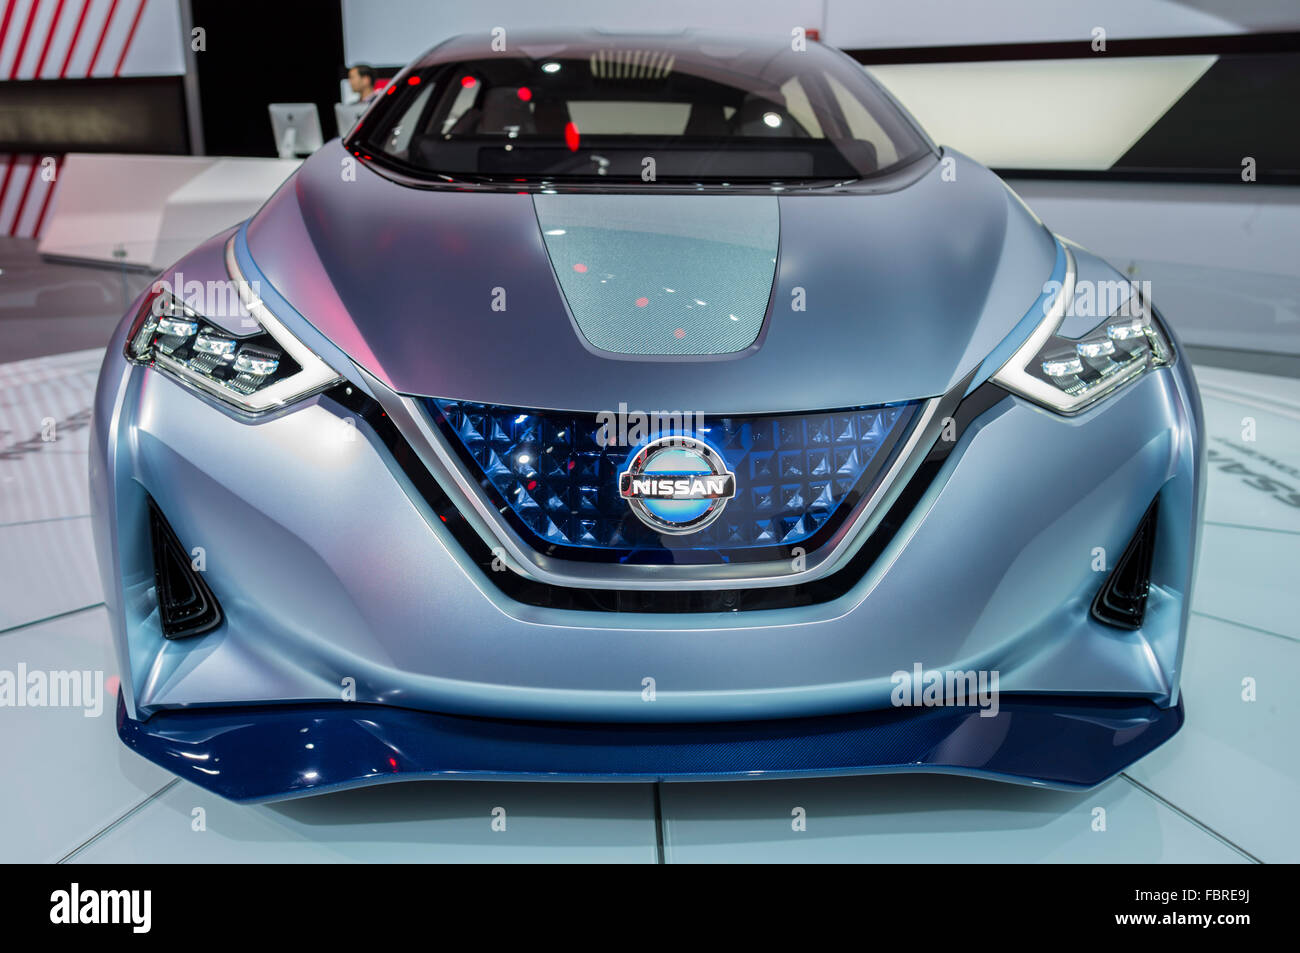 Nissan IDS Concept at the North American International Auto Show, Detroit 2016. - Stock Image